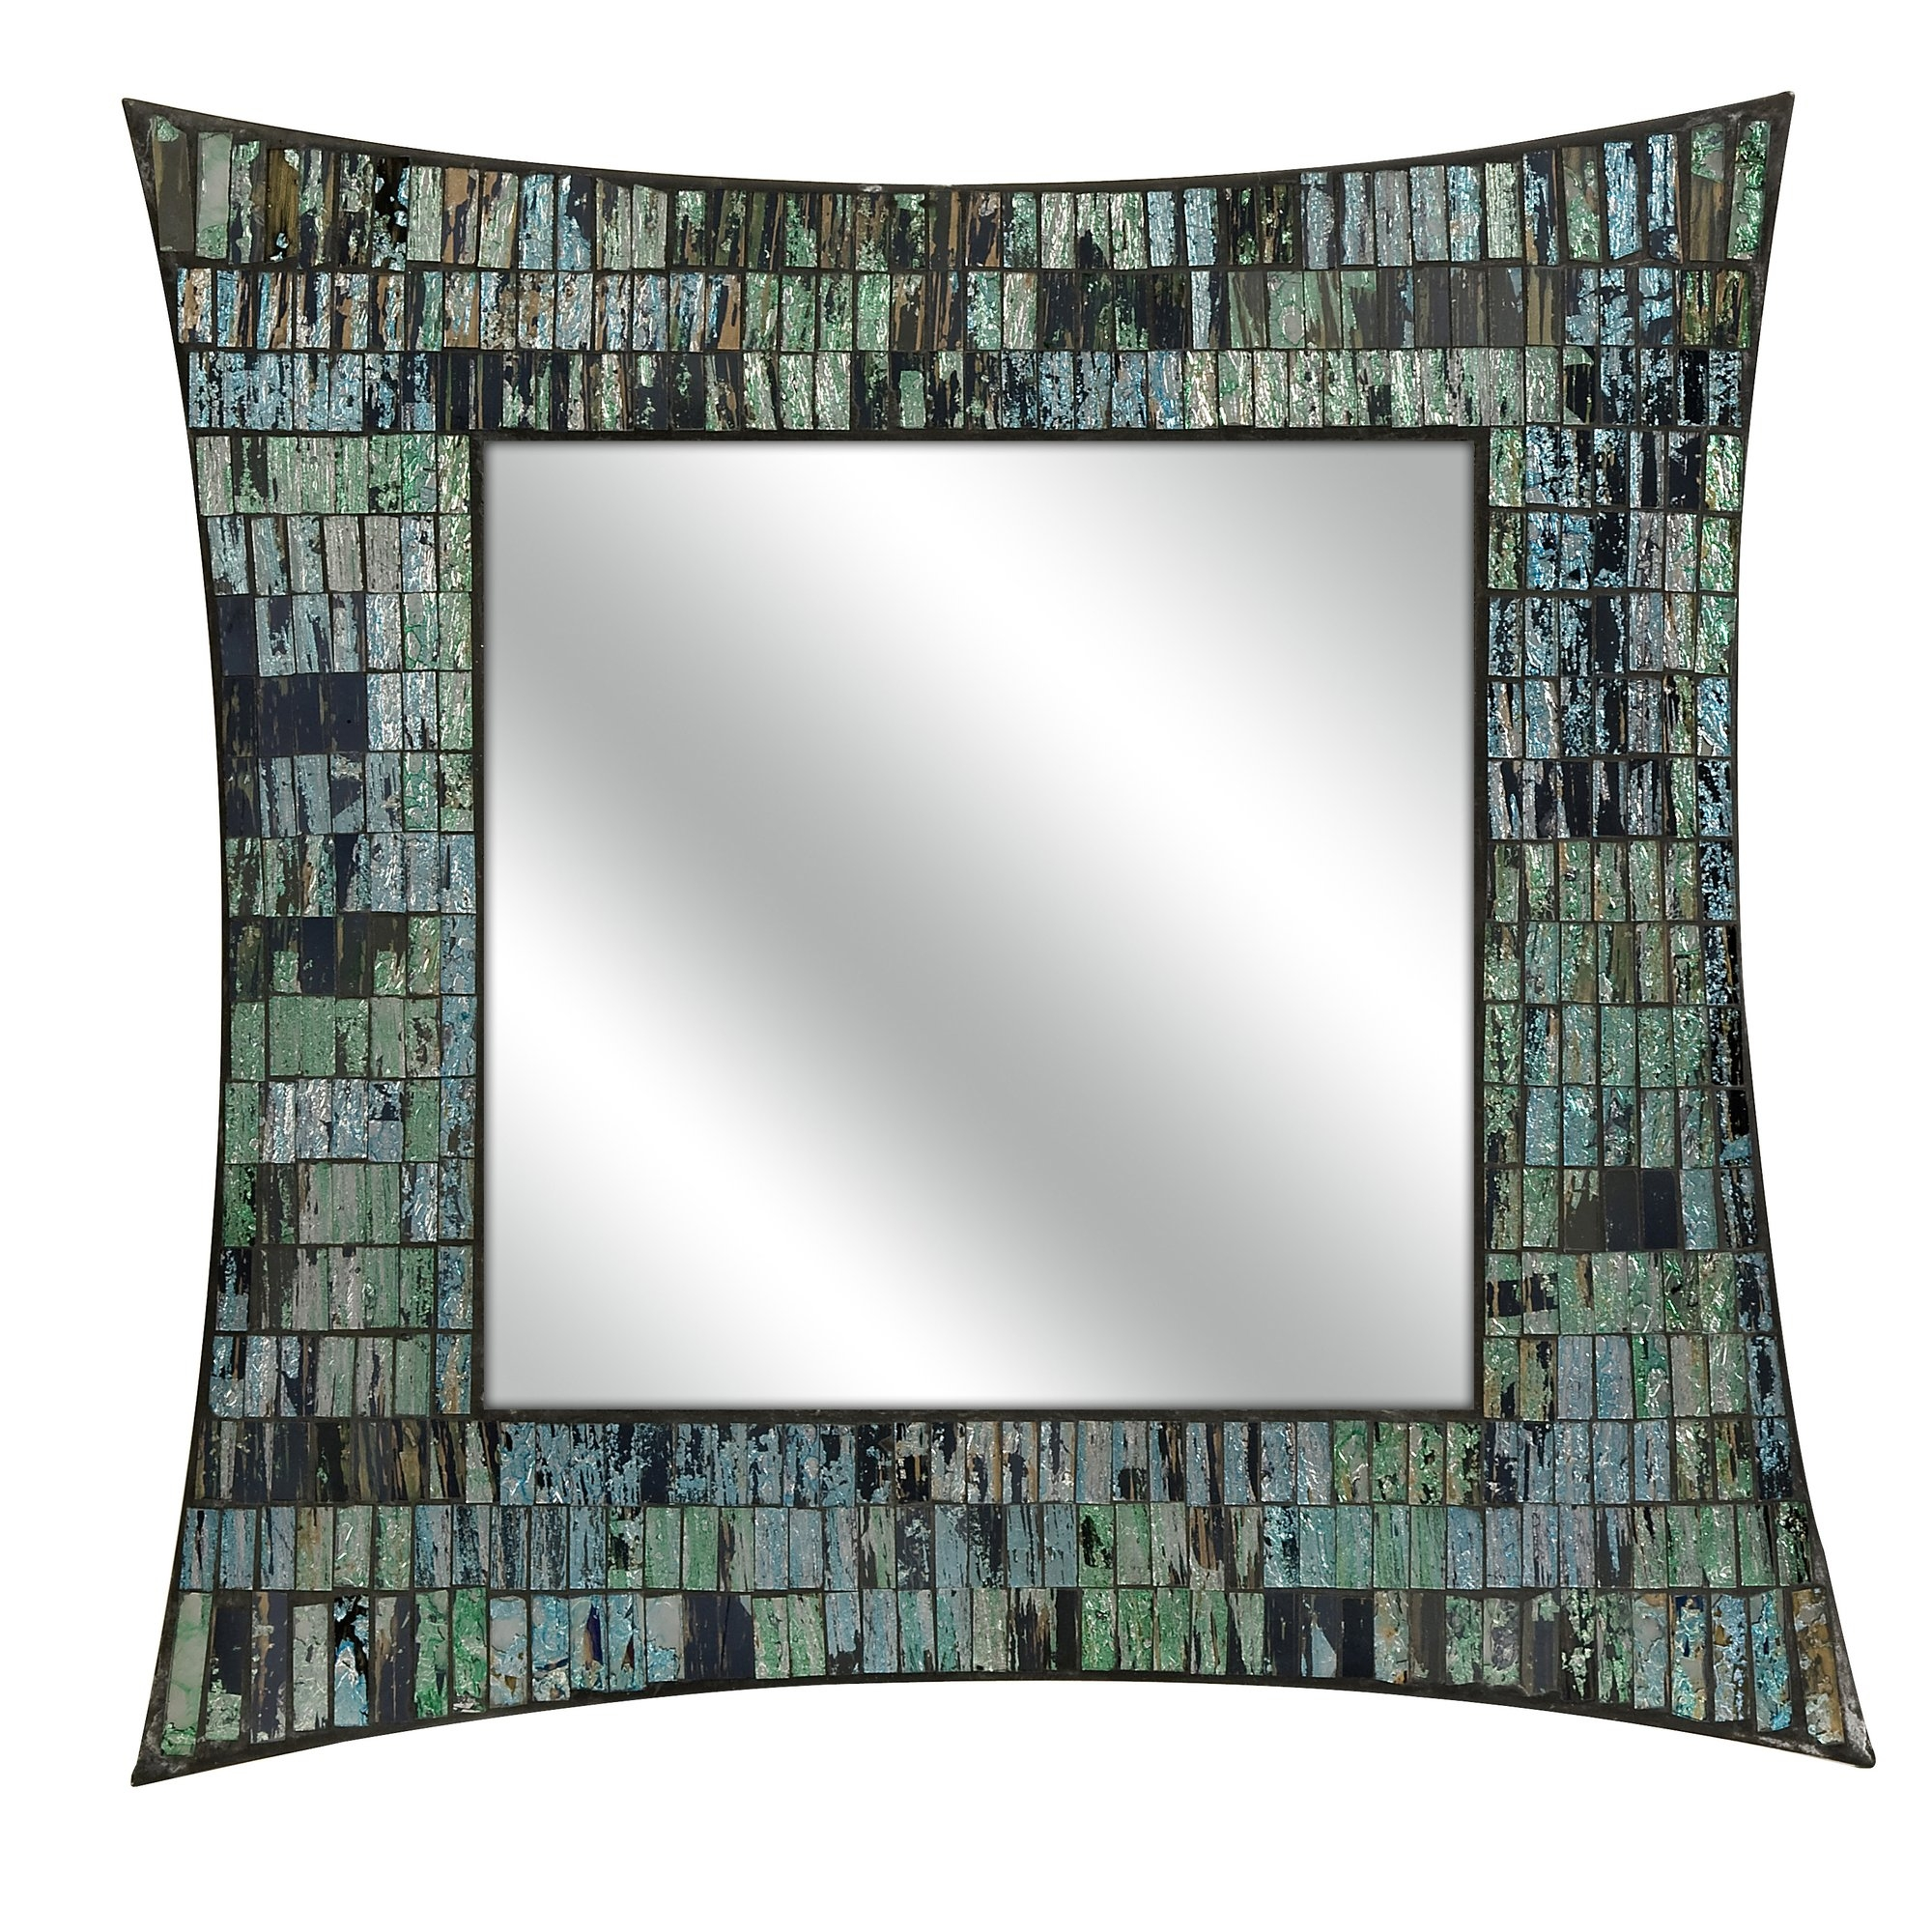 Imax Aramis Mosaic Wall Mirror Reviews Wayfair With Mosaic Wall Mirrors (Image 8 of 15)